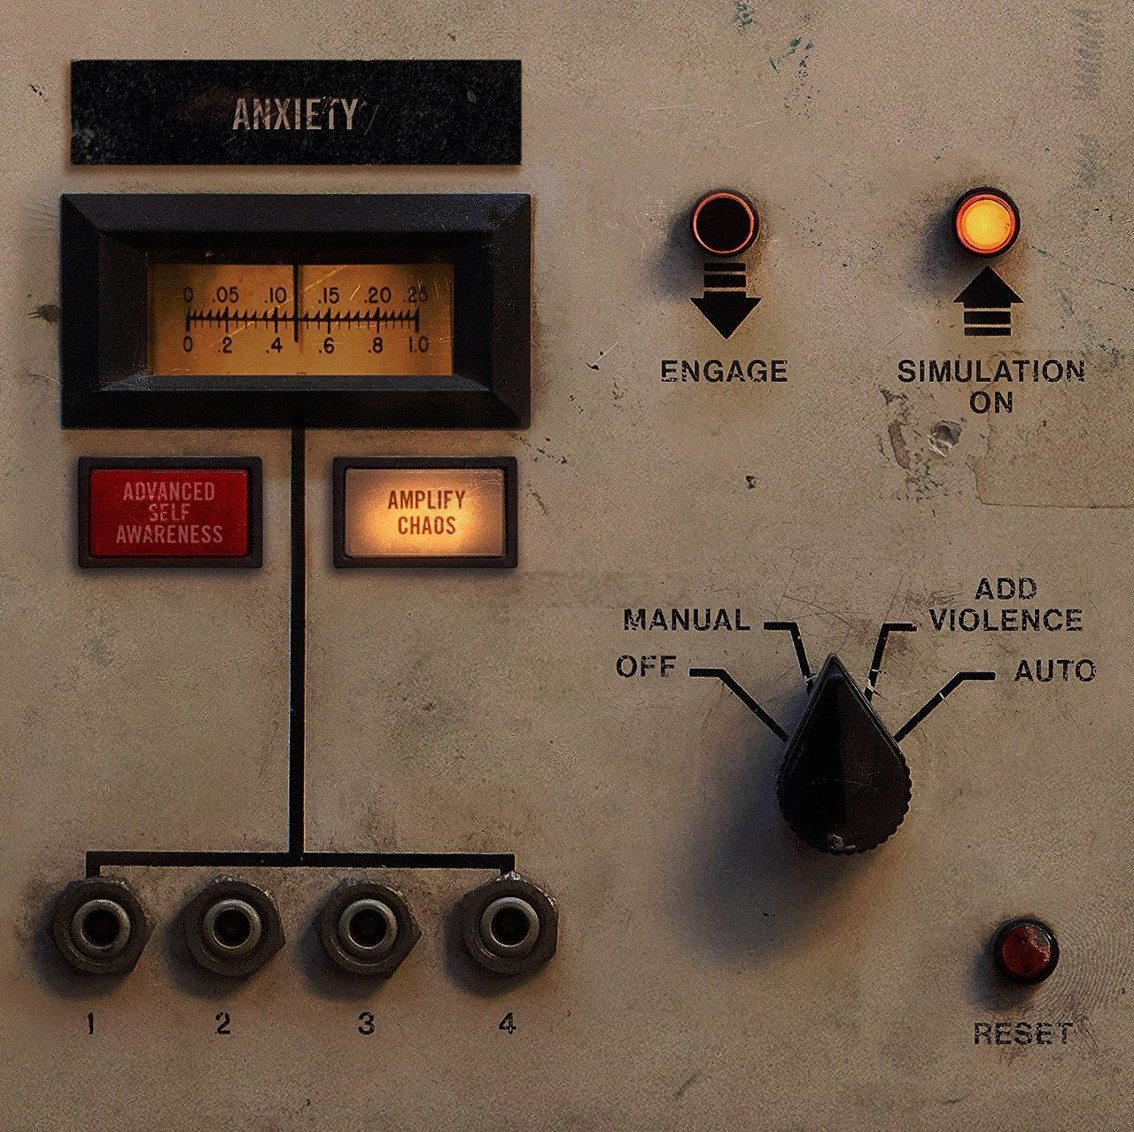 Nine Inch Nails to land new EP'Add Violence' in September on CD as well - get your copy now